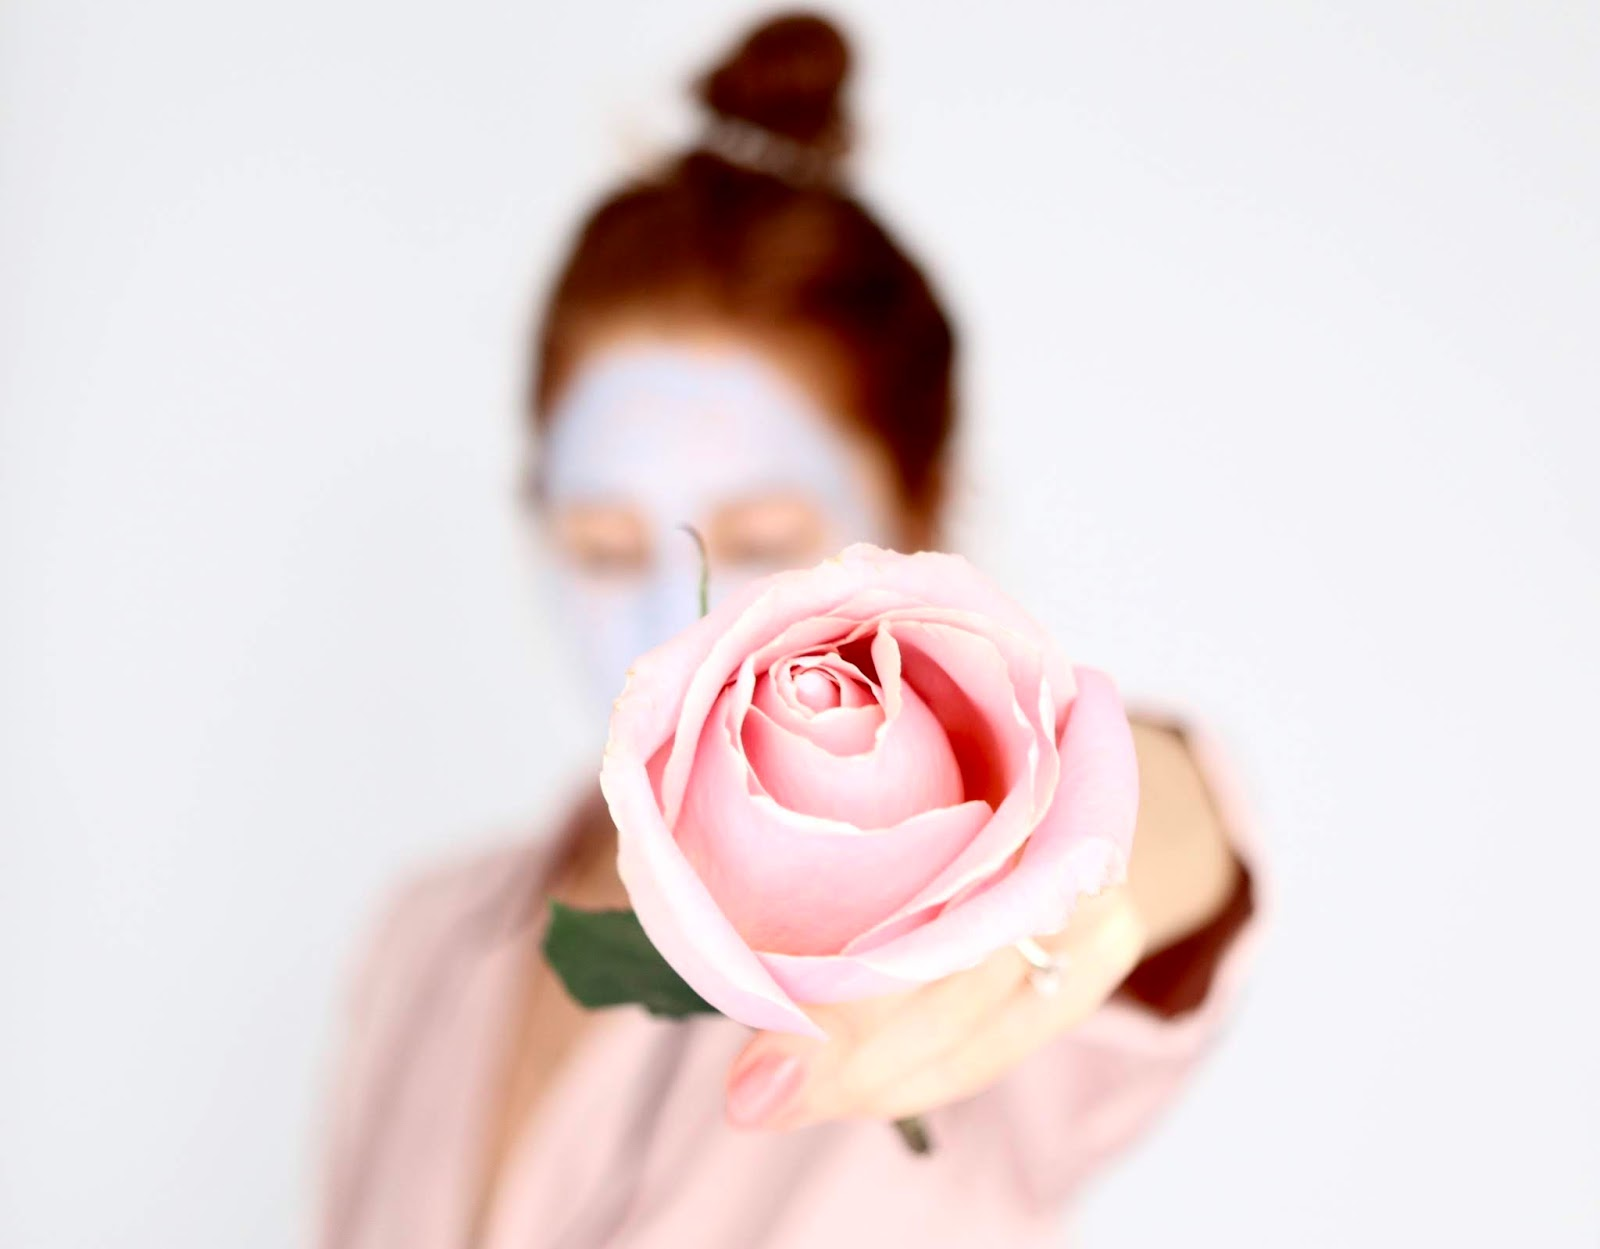 girl with natural rose